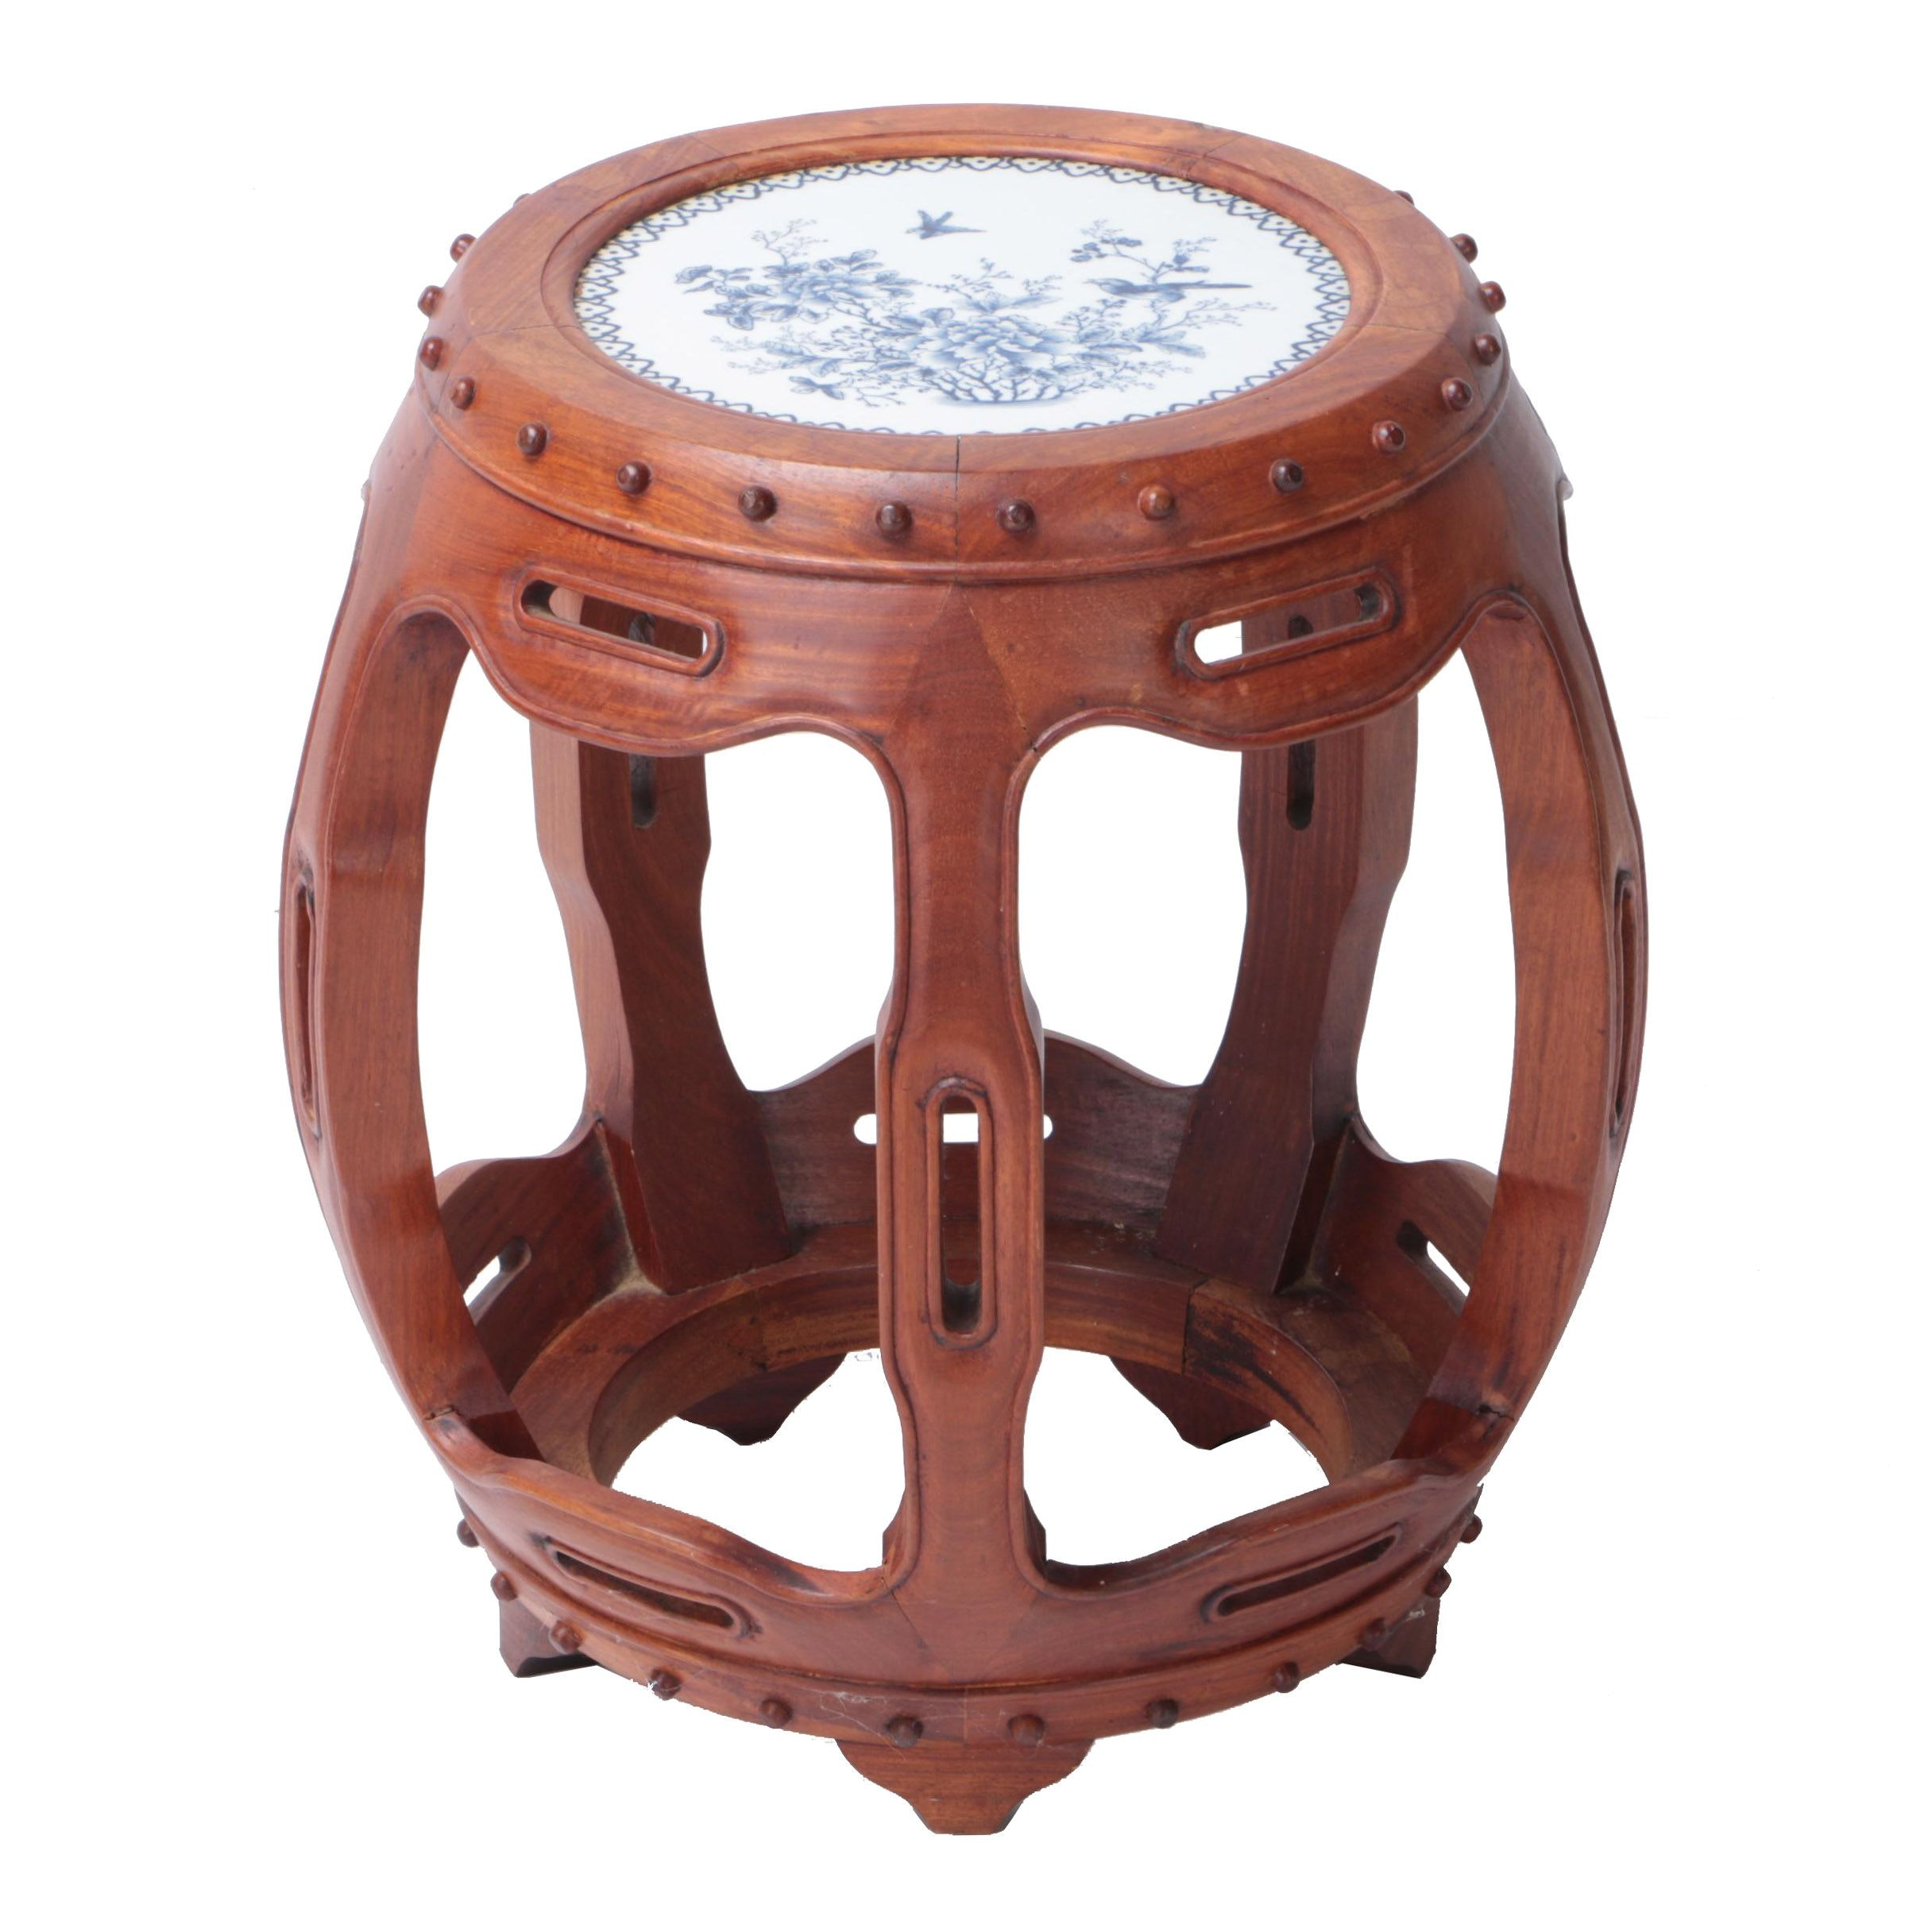 Chinese Wood and Ceramic Stool